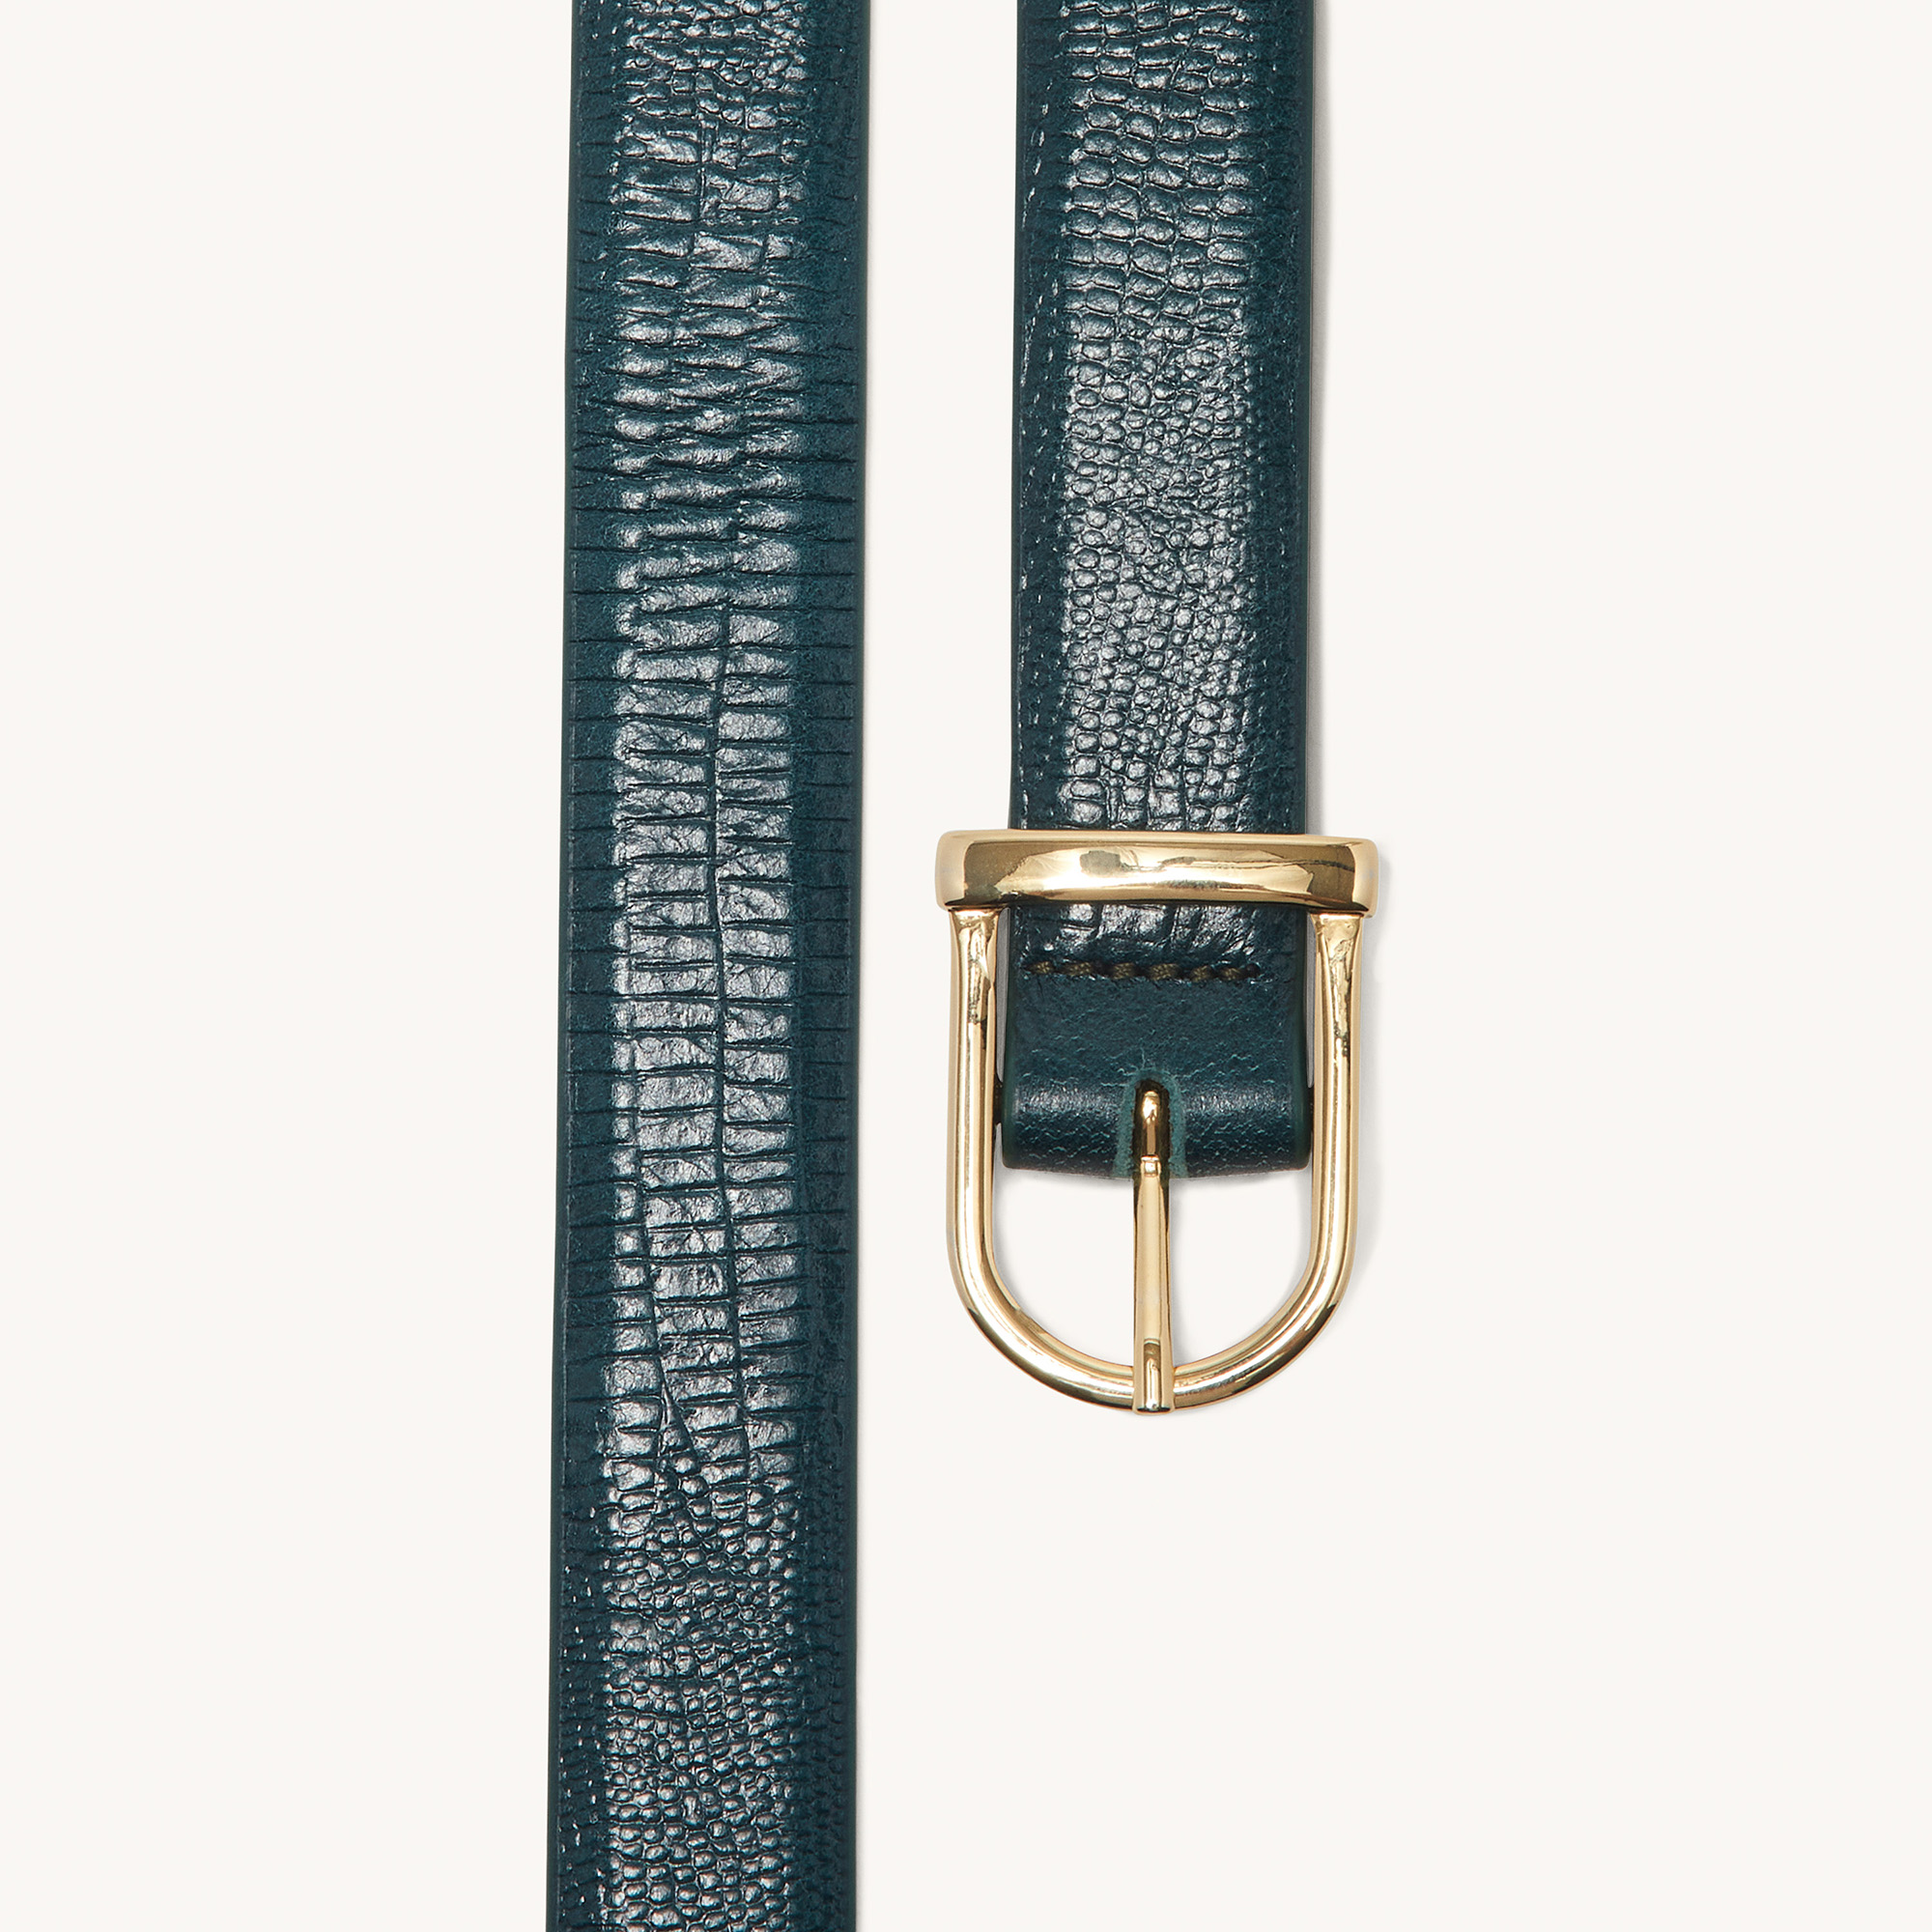 Lizard embossed leather belt  - Green